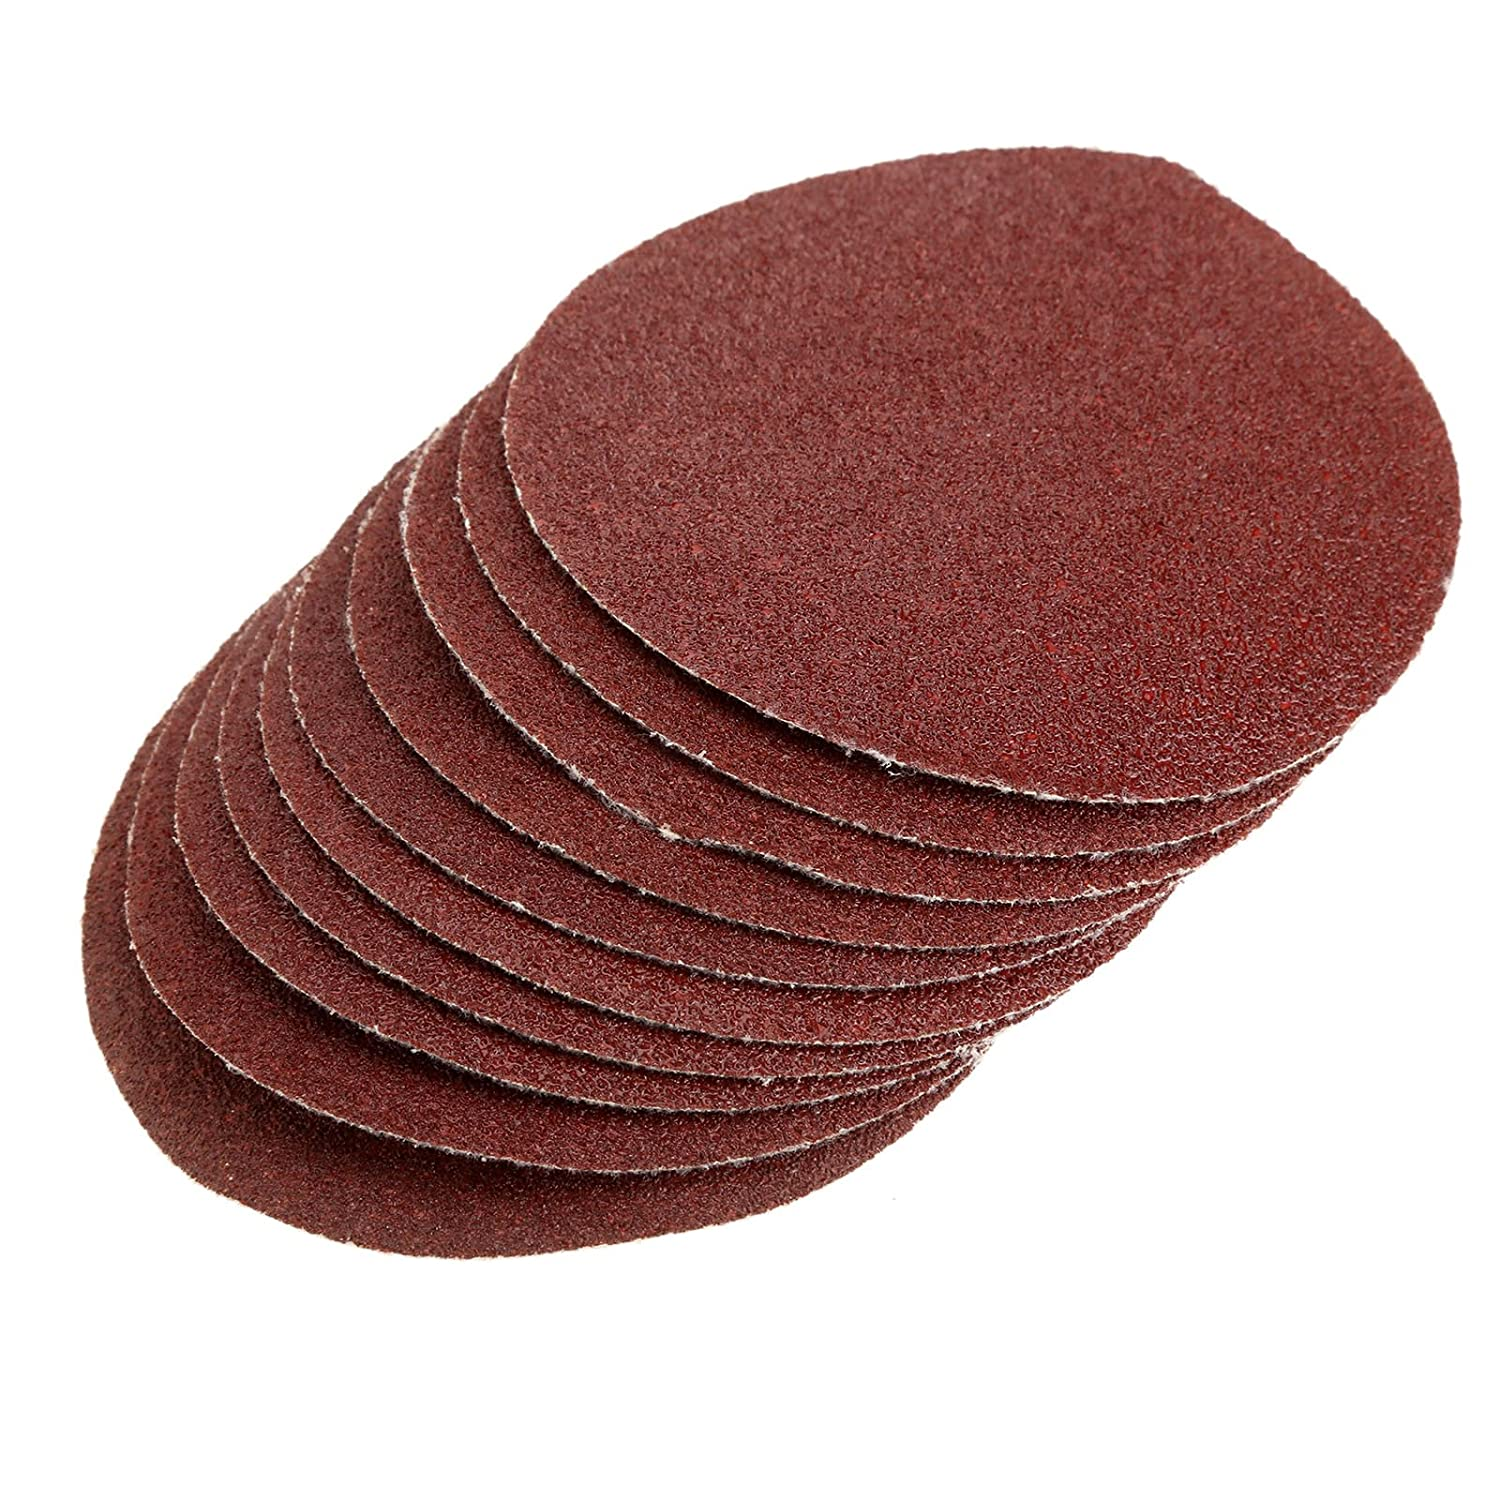 50Pcs NO-Hole Sanding Paper Sandpaper Finishing Discs for Woodworking Metal Finishing Abrasive Paper Pads 60 Grit